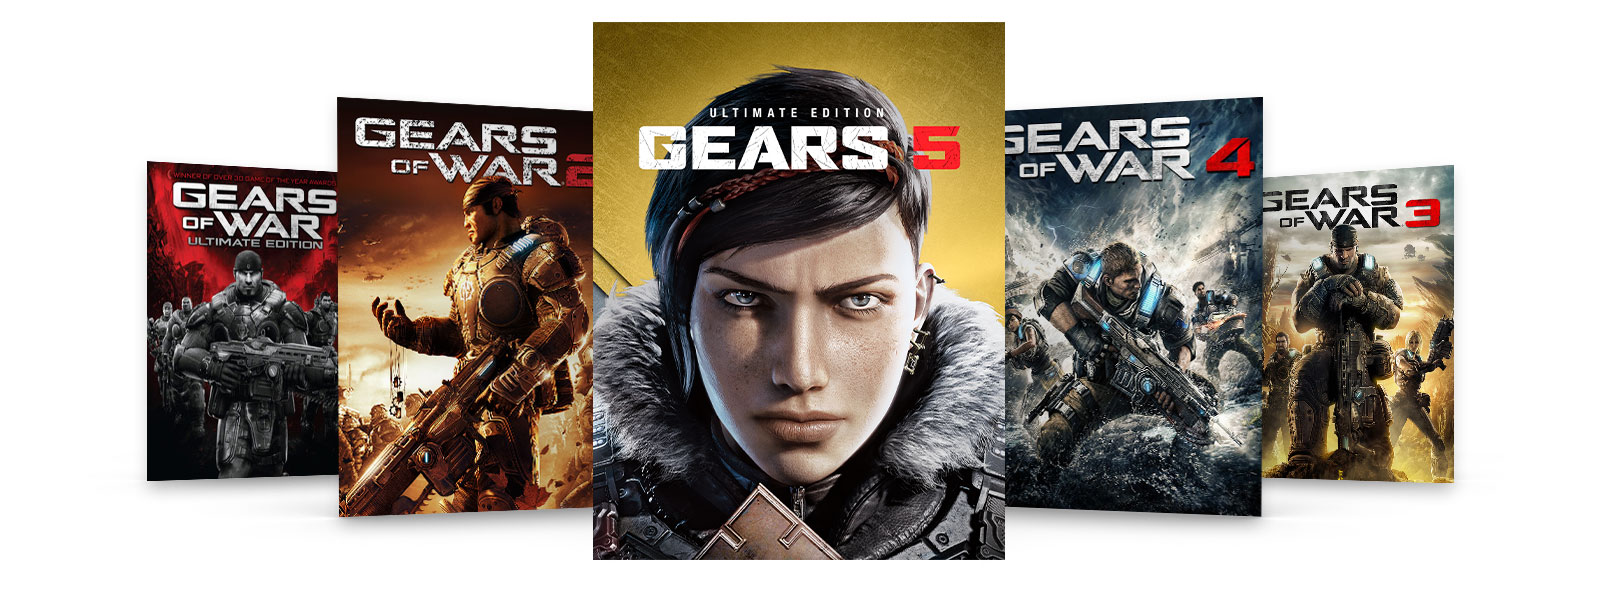 Box art of Gears of War Ultimate Edition and Gears 2, 3, and 4.